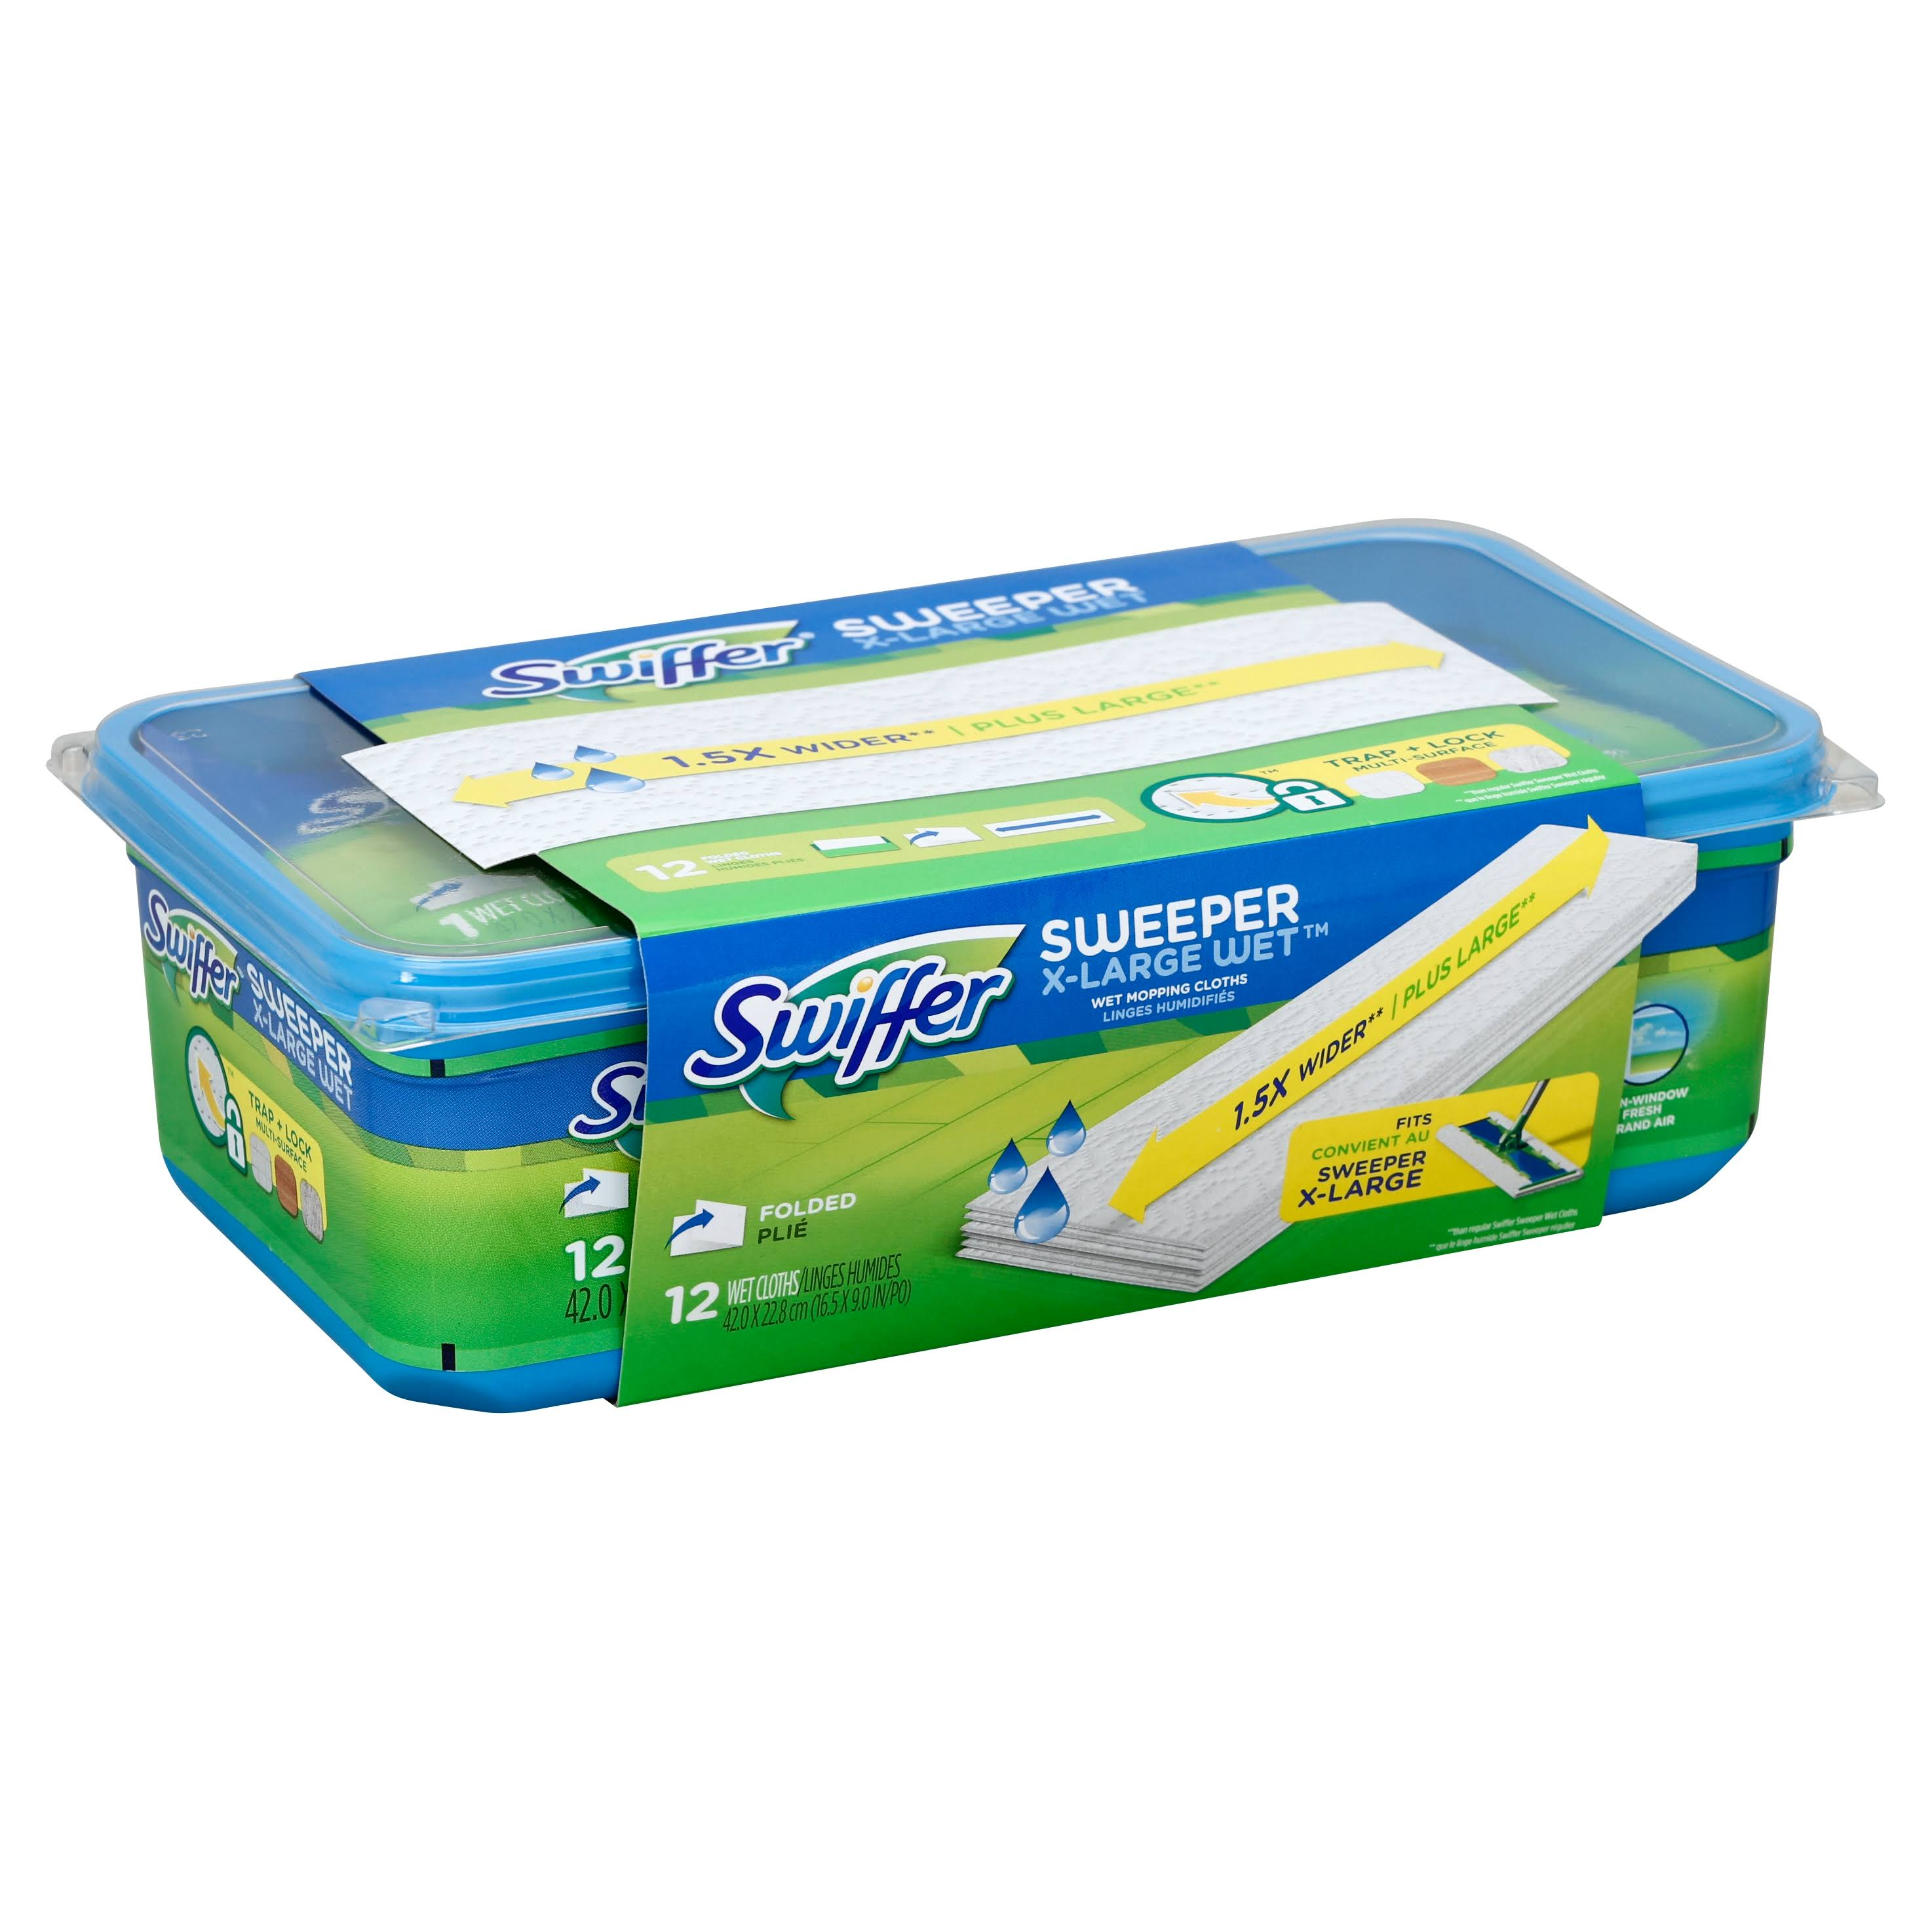 Swiffer Sweeper Wet Mopping Cloth Refills - with Open Window Scent, X-Large, 12ct